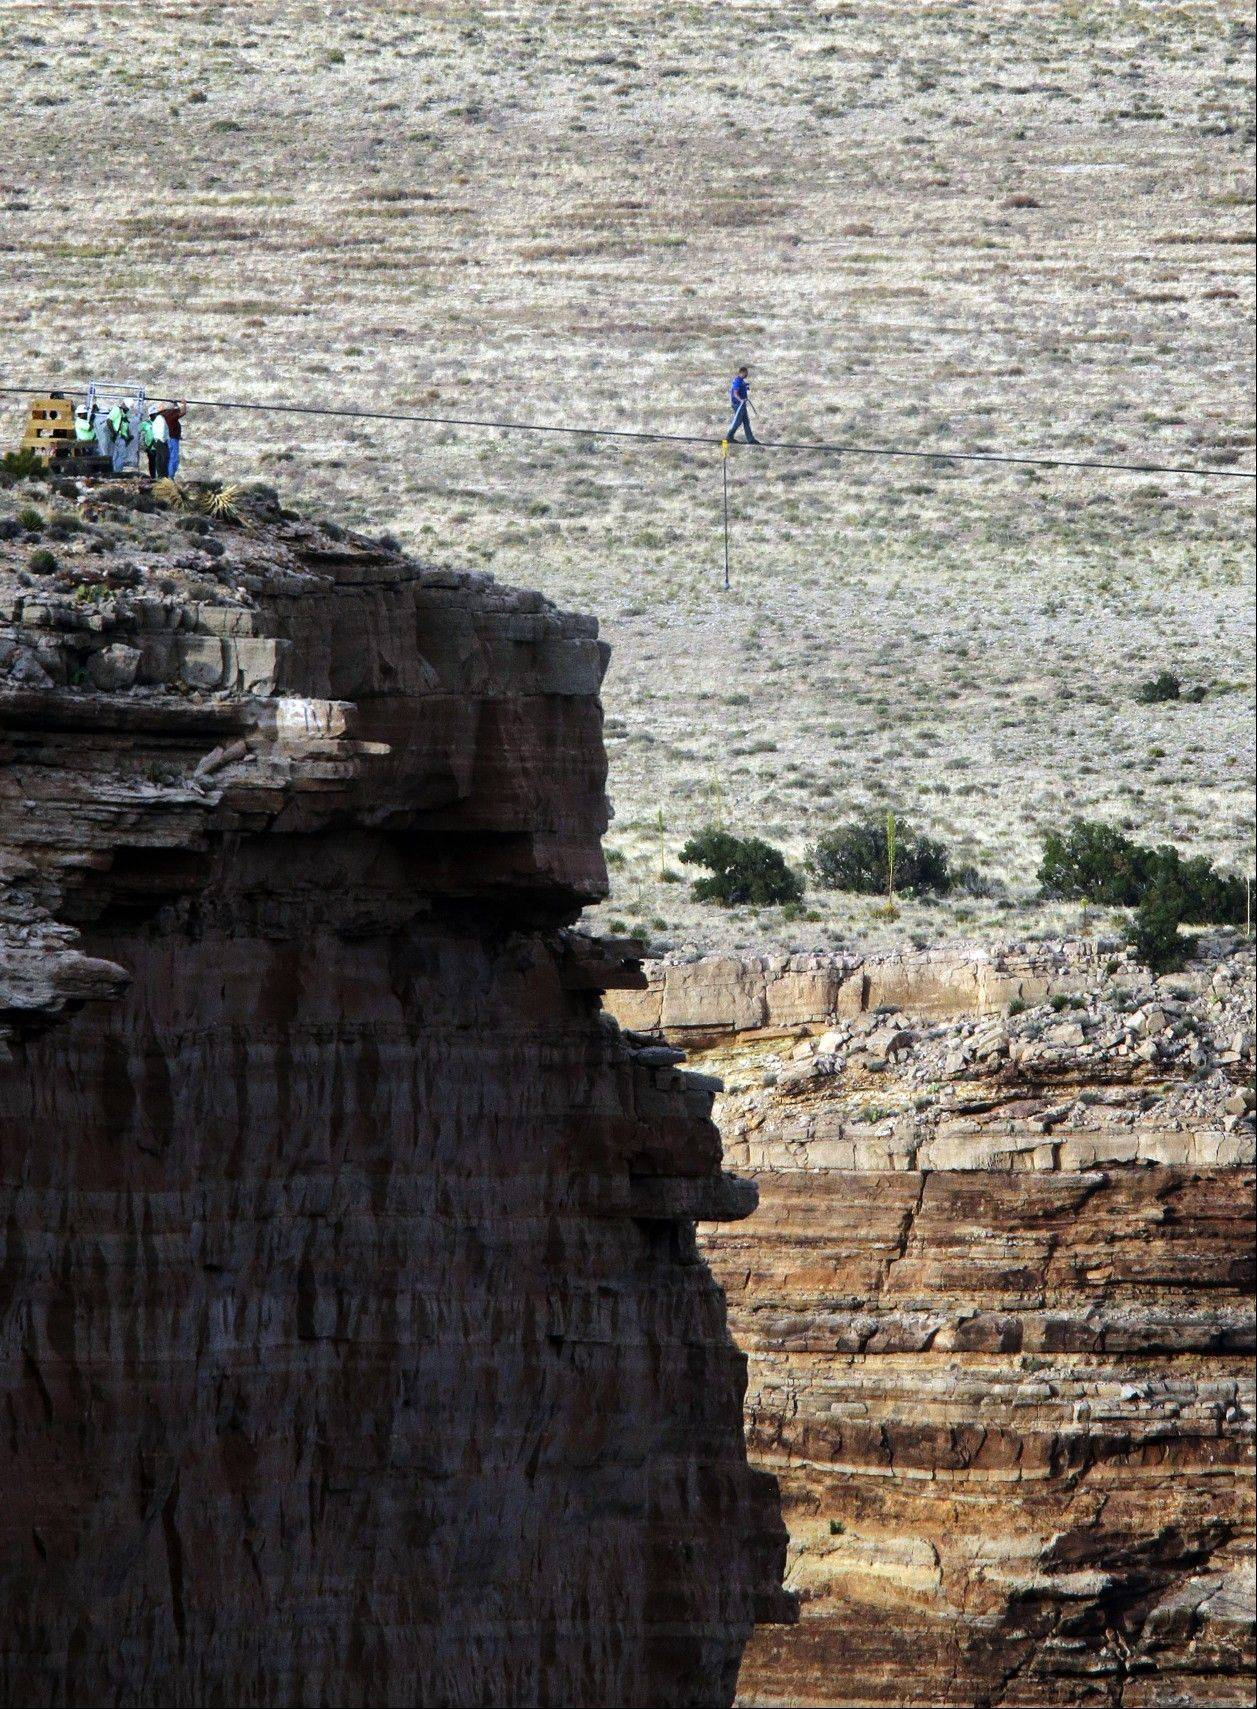 Daredevil Nik Wallenda crosses a tightrope 1,500 feet above the Little Colorado River Gorge, Ariz., on Sunday, June 23, 2013, on the Navajo Nation outside the boundaries of Grand Canyon National Park. Wallenda completed the tightrope walk that took him a quarter mile over the gorge in just more than 22 minutes.